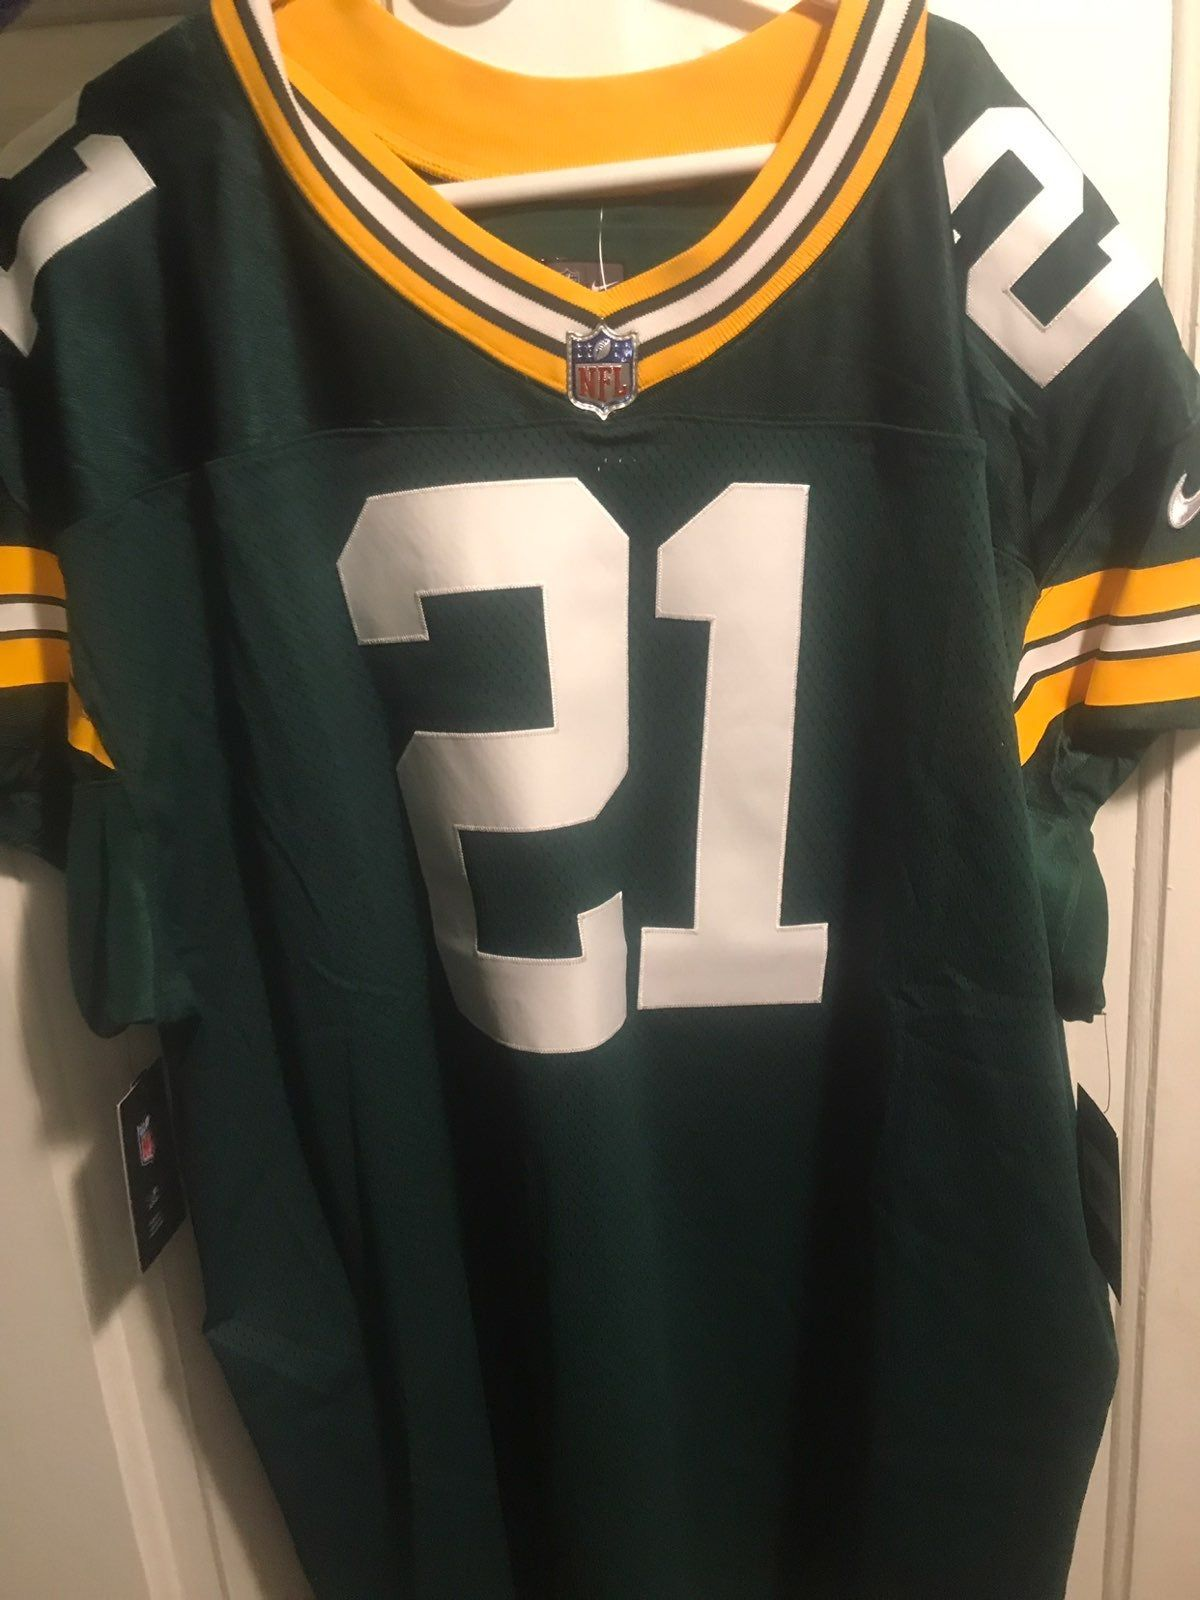 Brand New Green Bay Packers Nike Jersey With The Sewn On Numbers 4xl Nike Jersey Nike Nfl Jersey